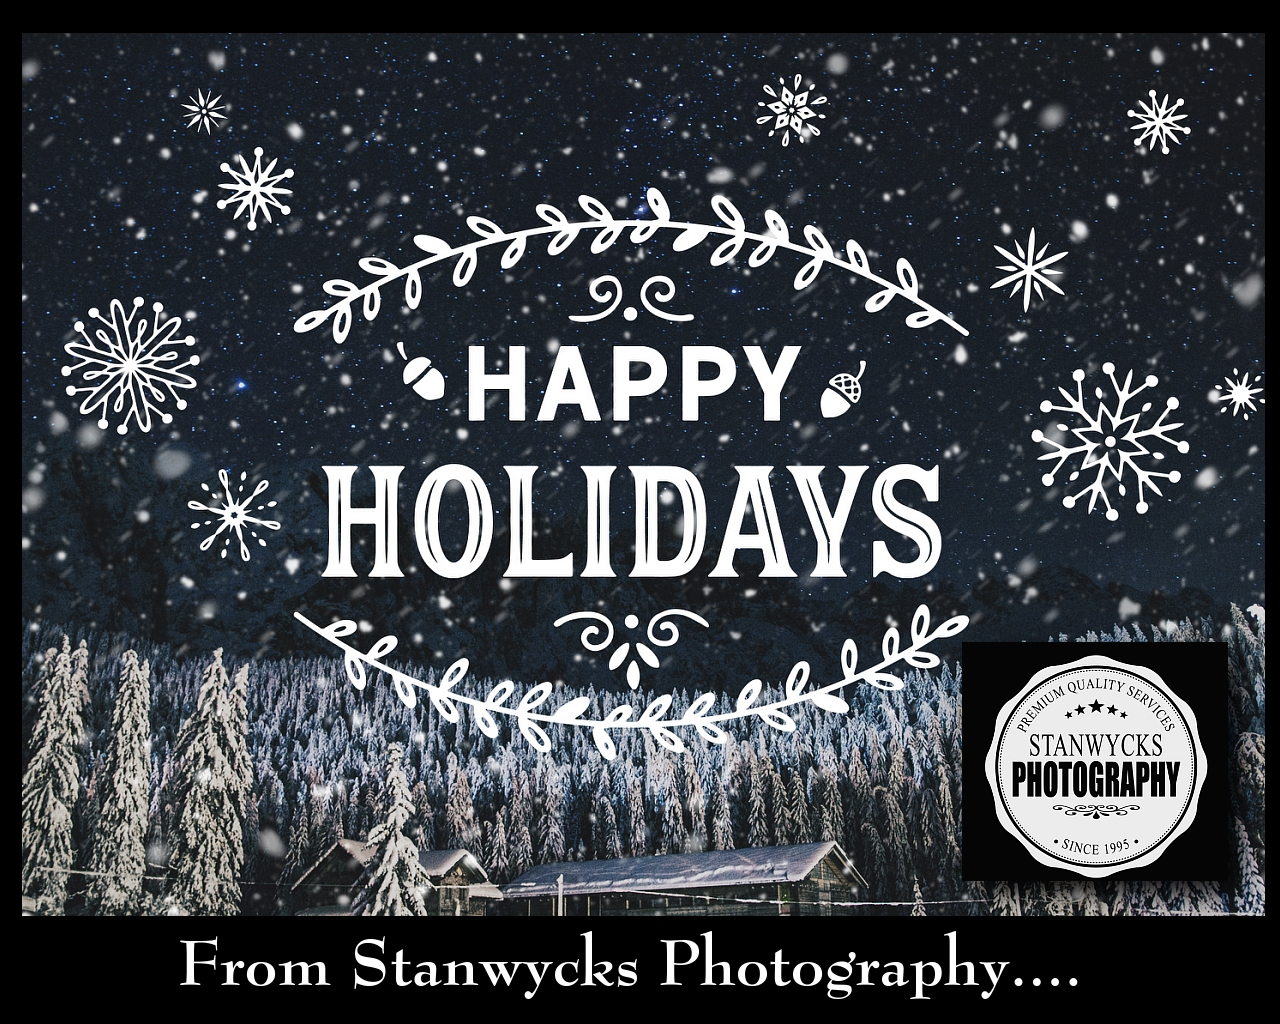 Holiday Web Pages 064 (Sheet 64)